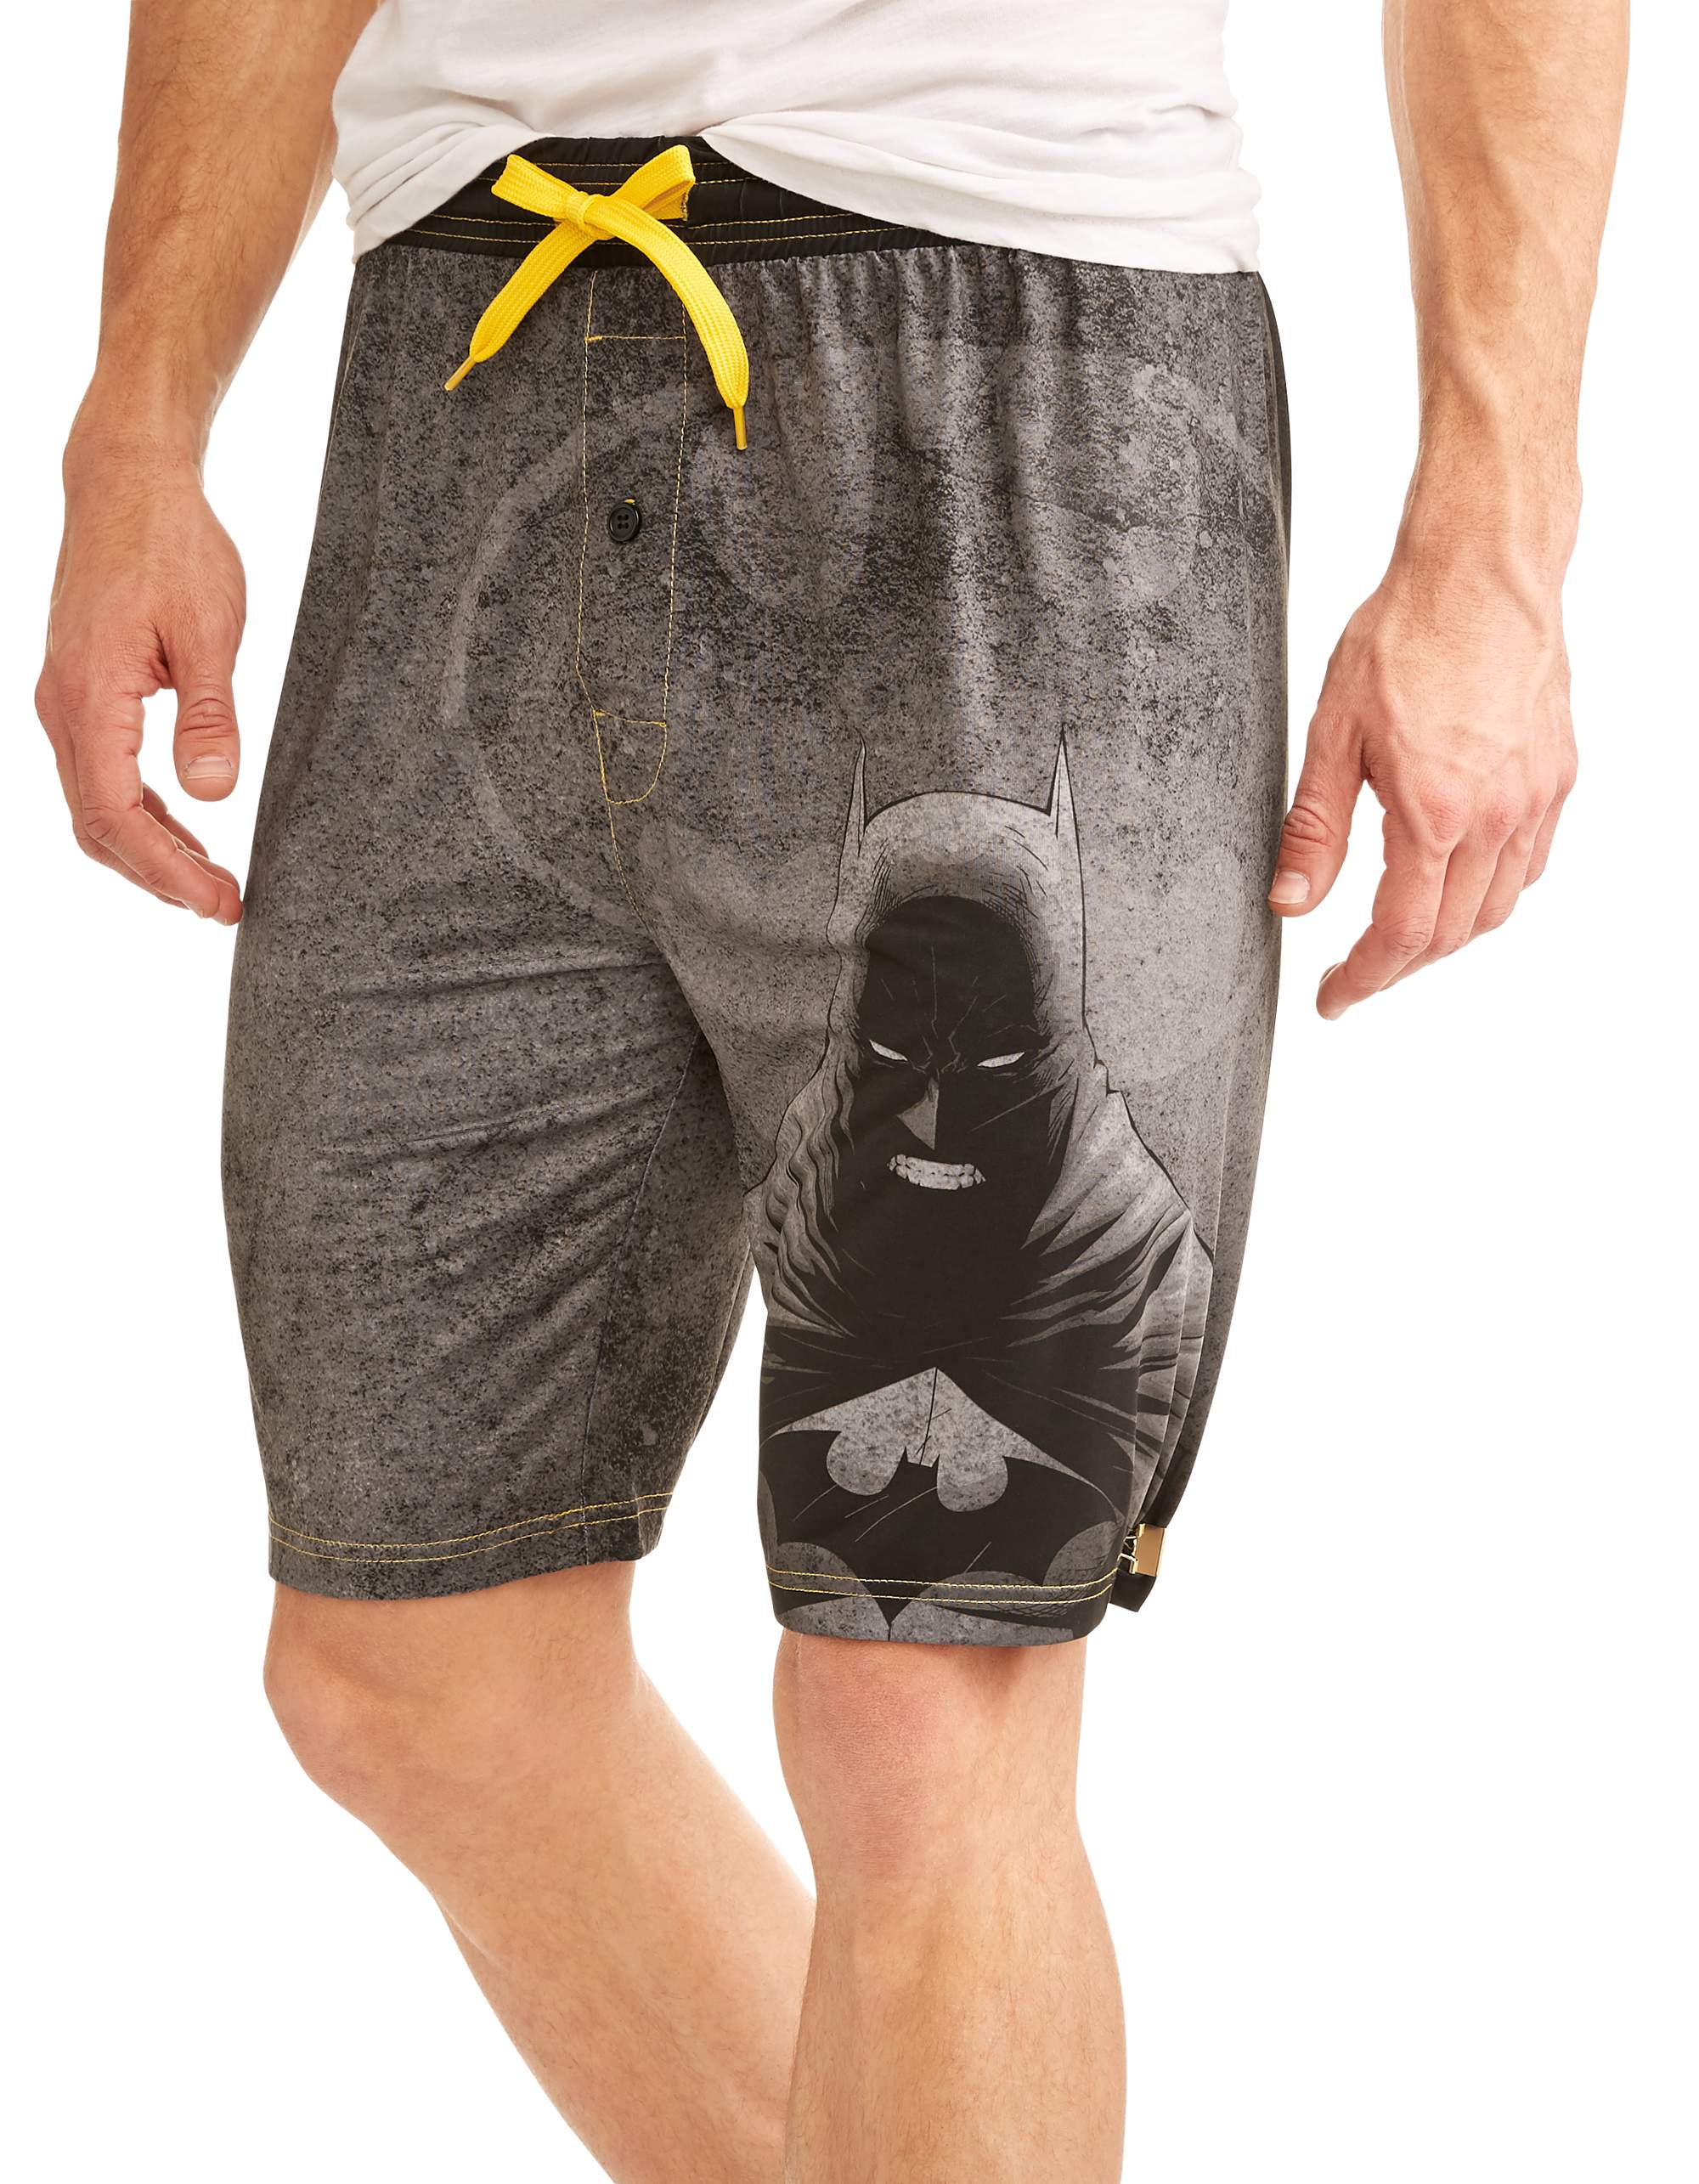 Men's Batman Jammer Short by Briefly Stated